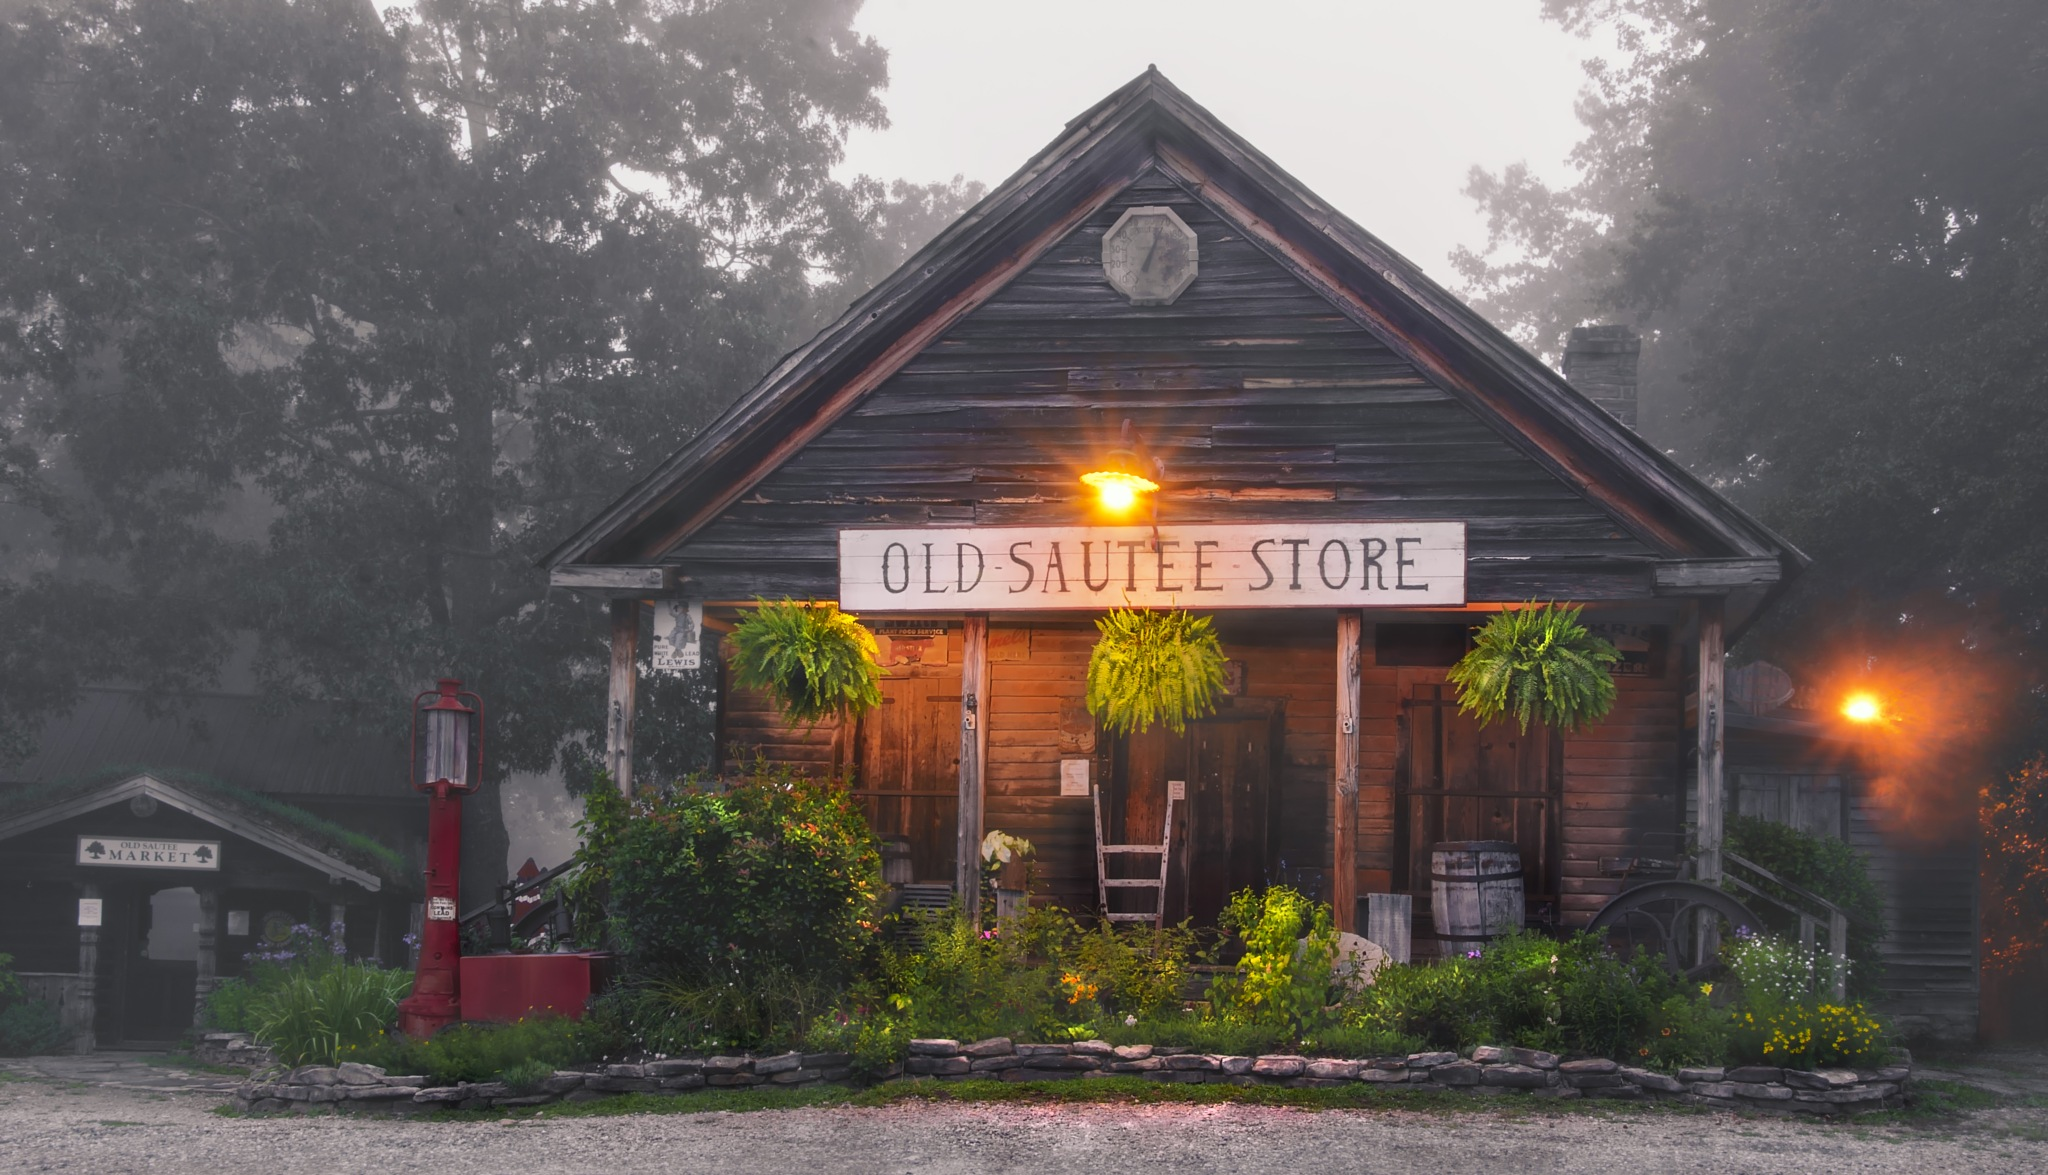 Old Sautee Store in Early Morning Light by Bill Hughes